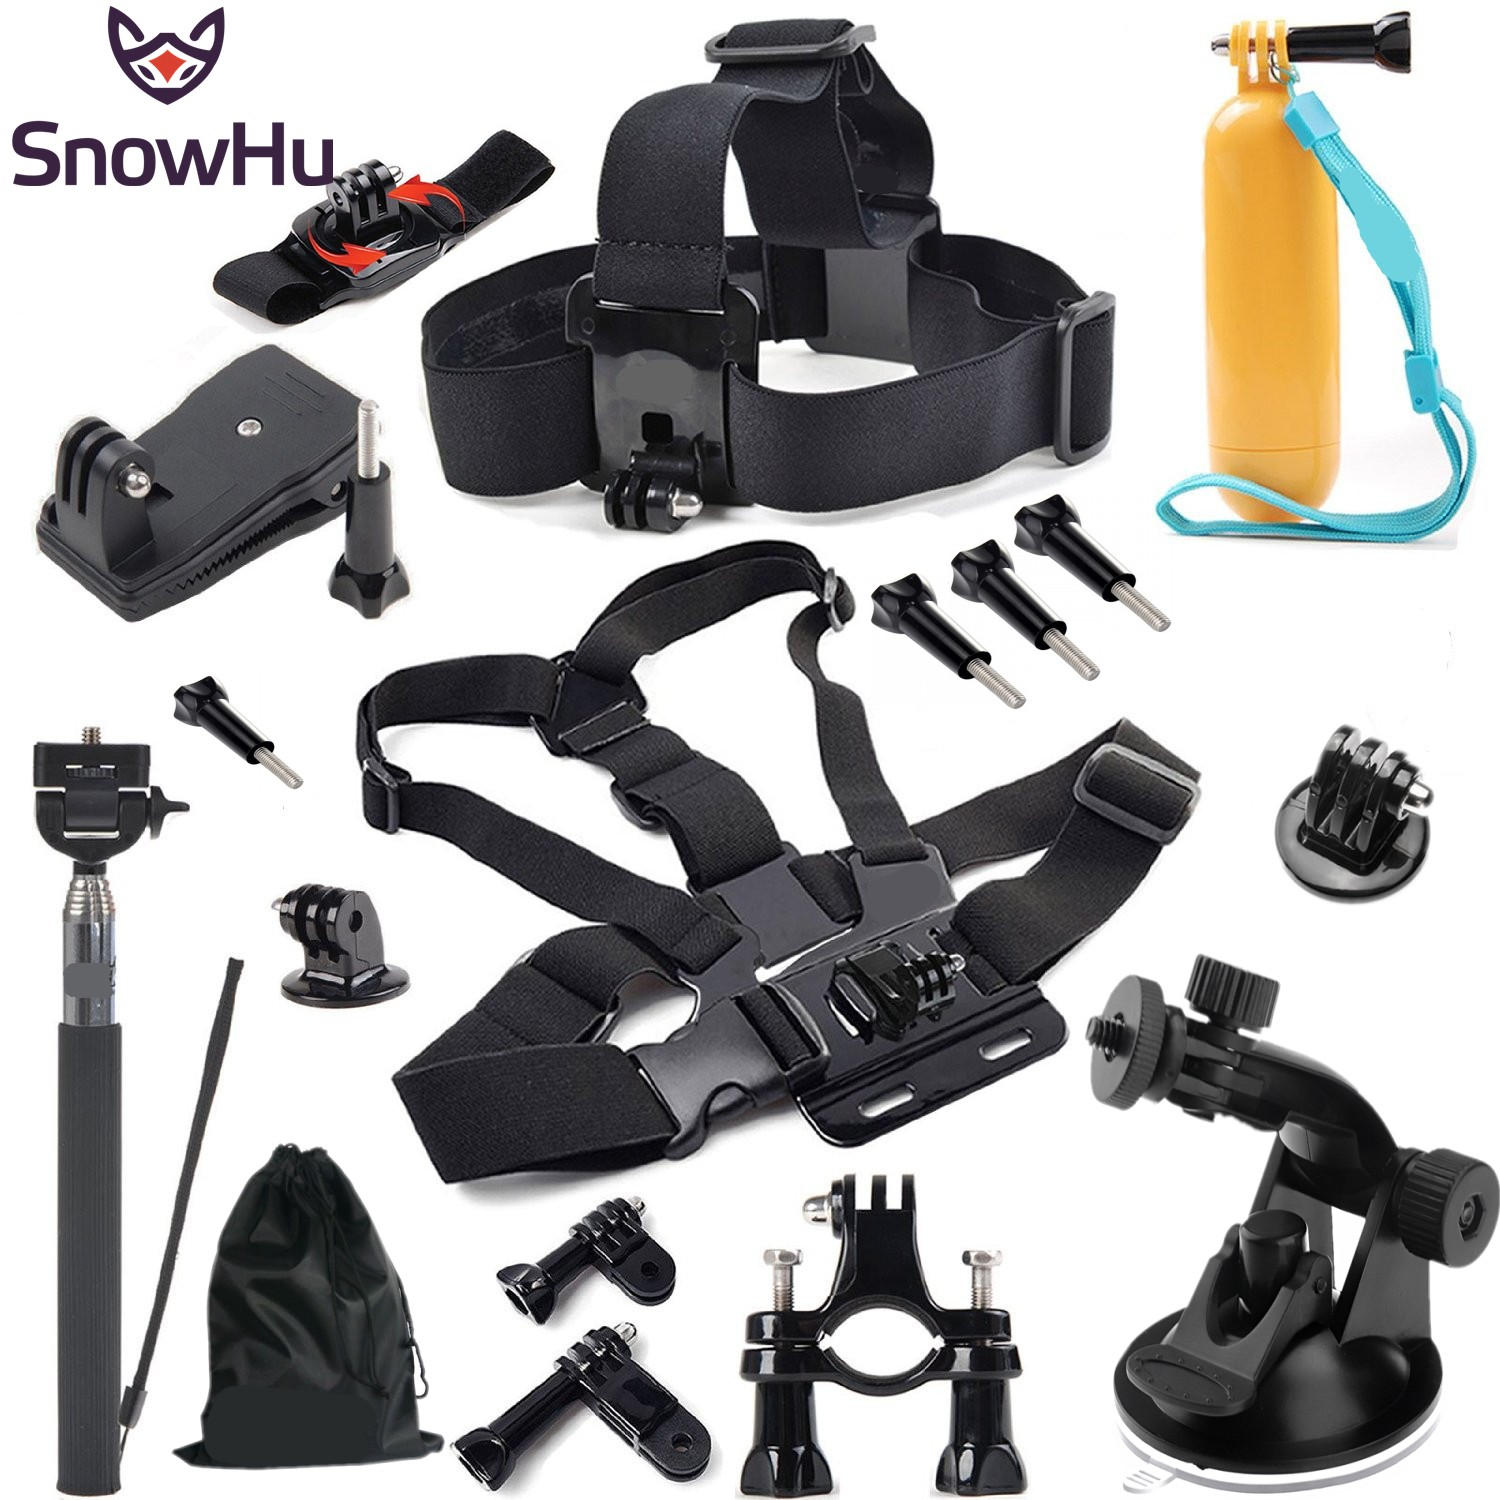 SnowHu For go pro Accessories Head chest strap bracelet Monopod with Mount Adapter for GoPro Hero 5 4 3 3+ SJ4000 xiaomi yi GS07 gopro accessories head belt strap mount adjustable elastic for gopro hero 4 3 2 1 sjcam xiaomi yi camera vp202 free shipping